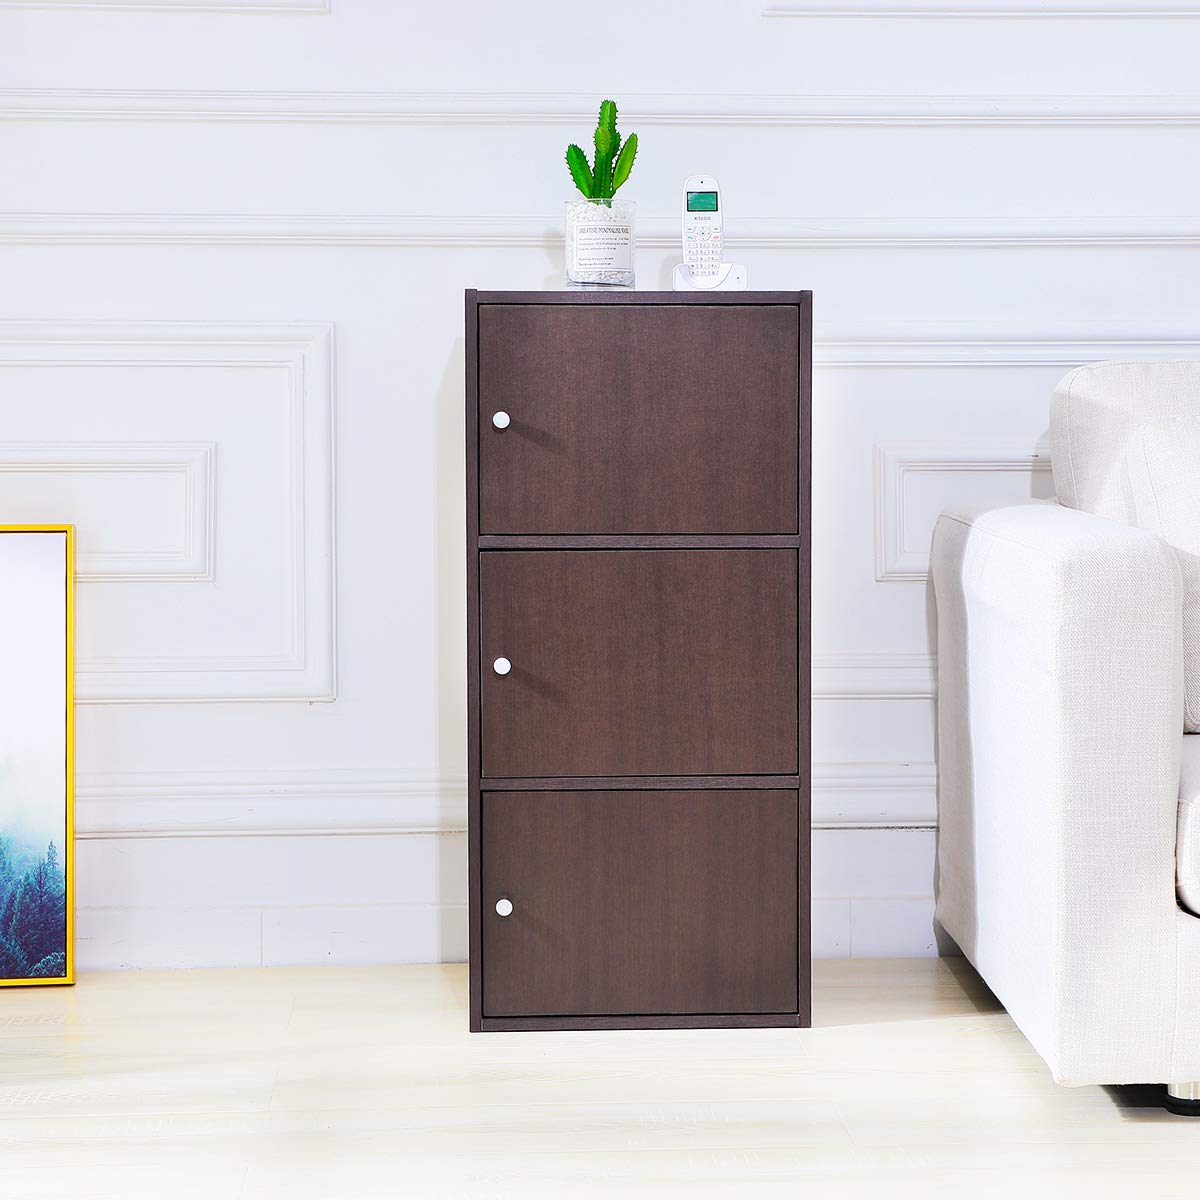 Multifunctional Storage-Cabinet with 3 Magnetic Doors Classic Modern Bookcase Home Office Vertical File Cabinets, Espresso Brown-CAS011 by Coavas (Image #7)